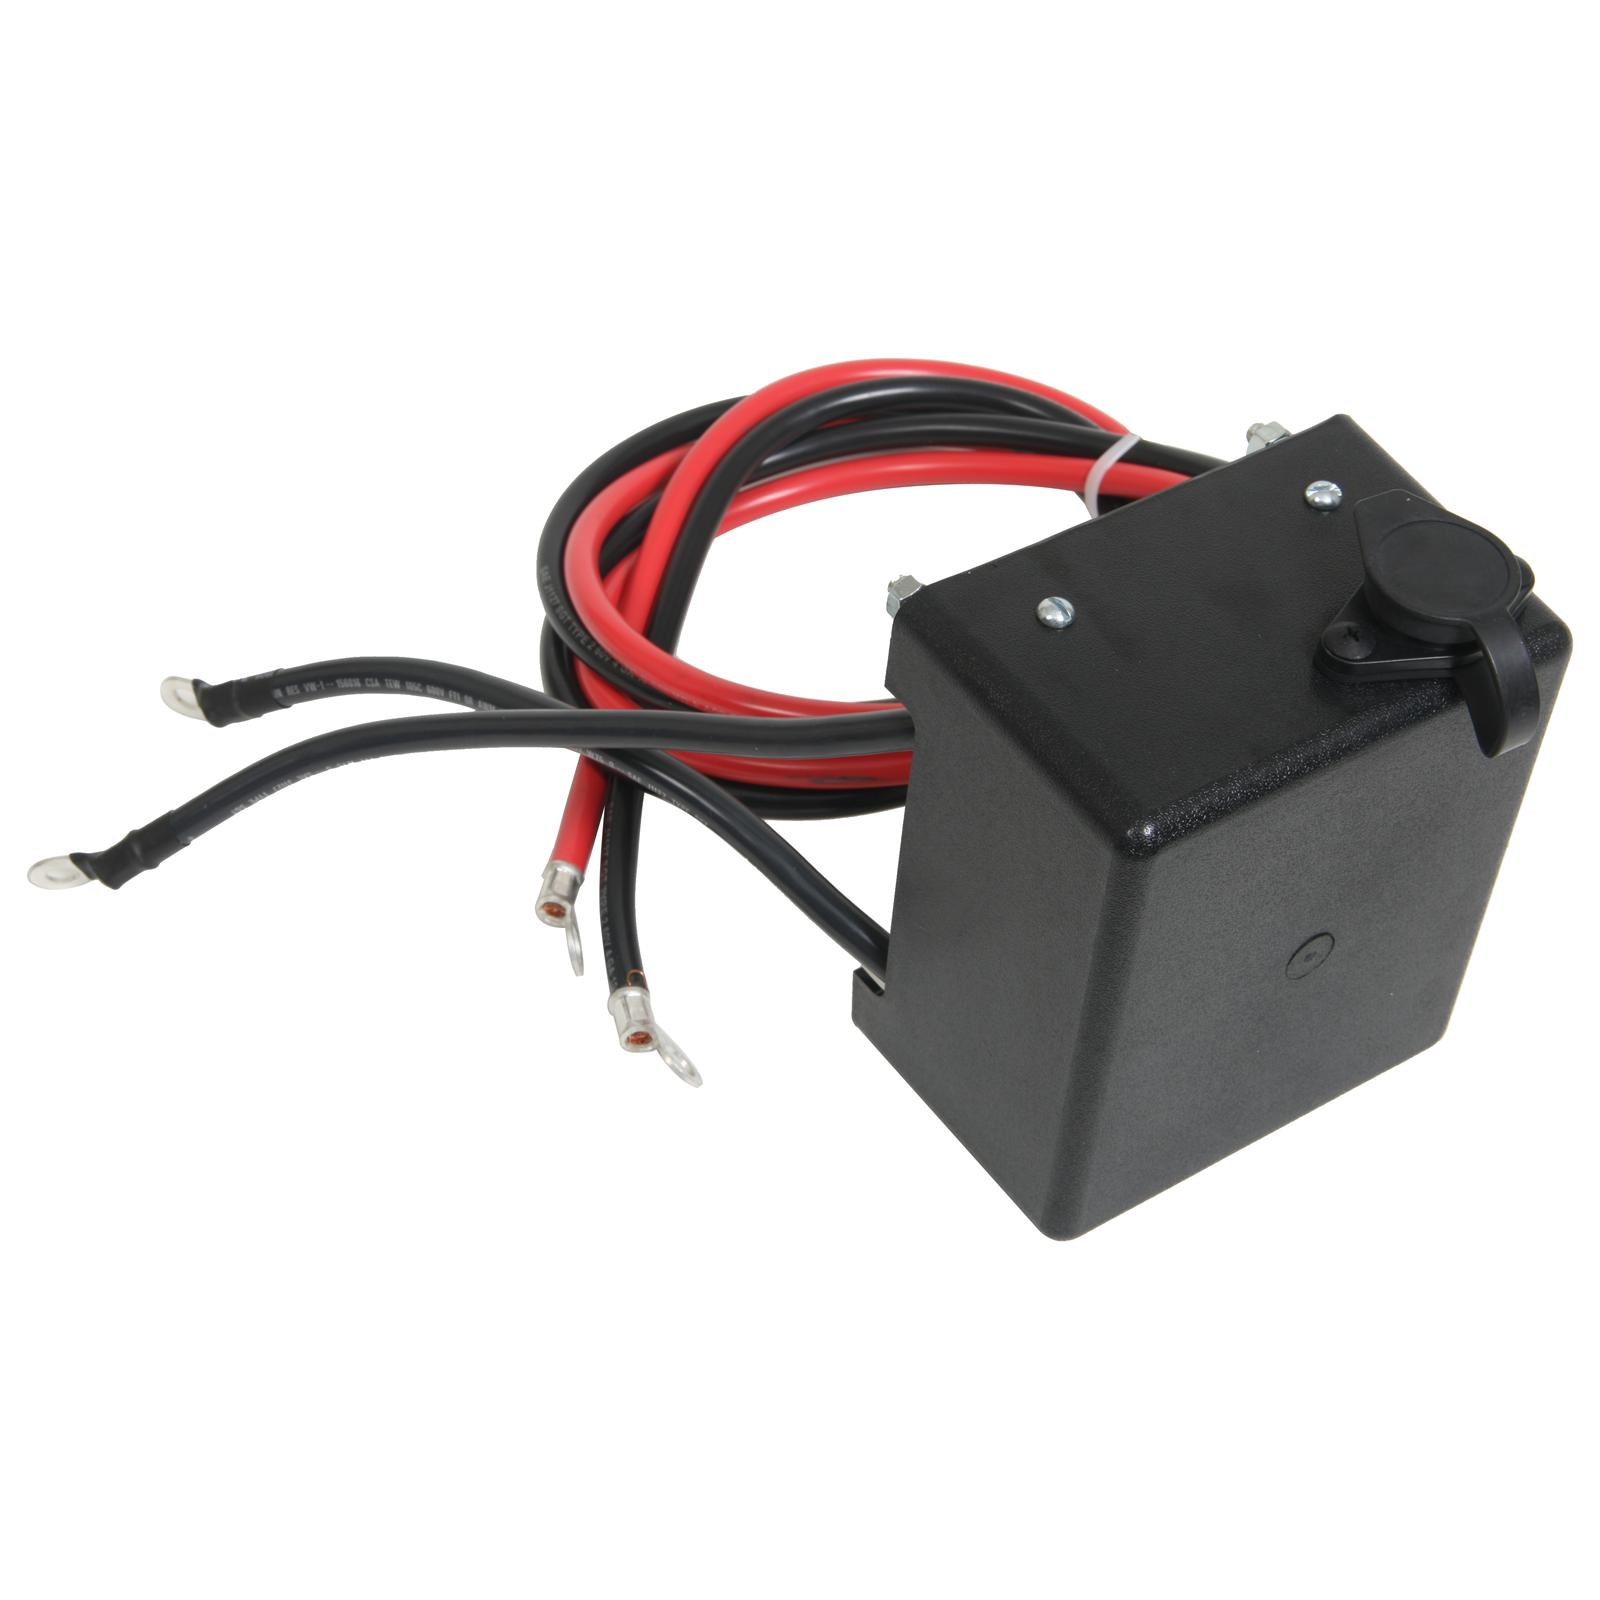 hight resolution of ramsey winch replacement part solenoid assembly 3 6 hp 12 volt rep 8 278155